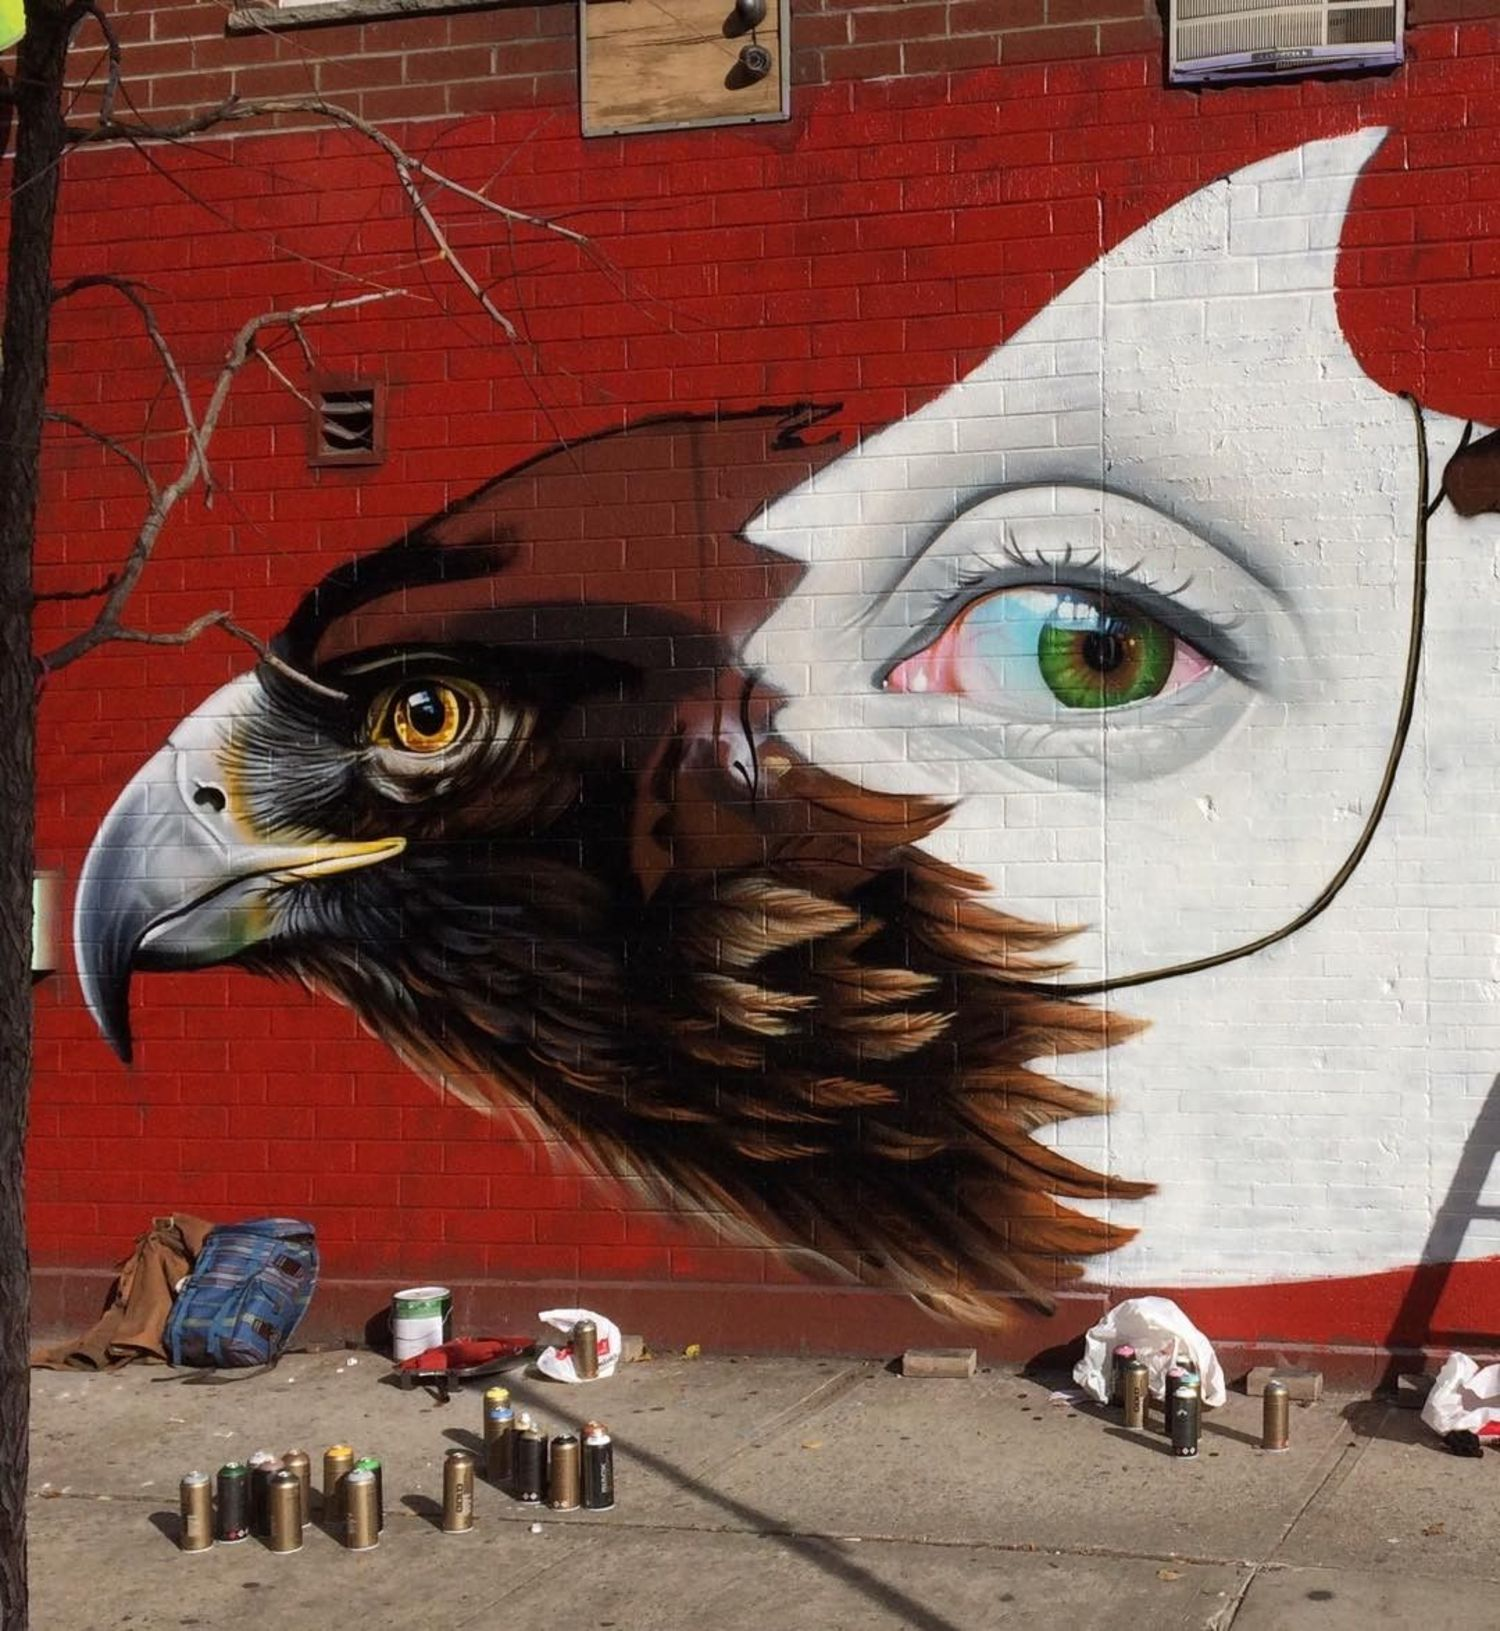 Almost there #freehand #sprayart #streetart #mural #newyork #mask #eye #eagle